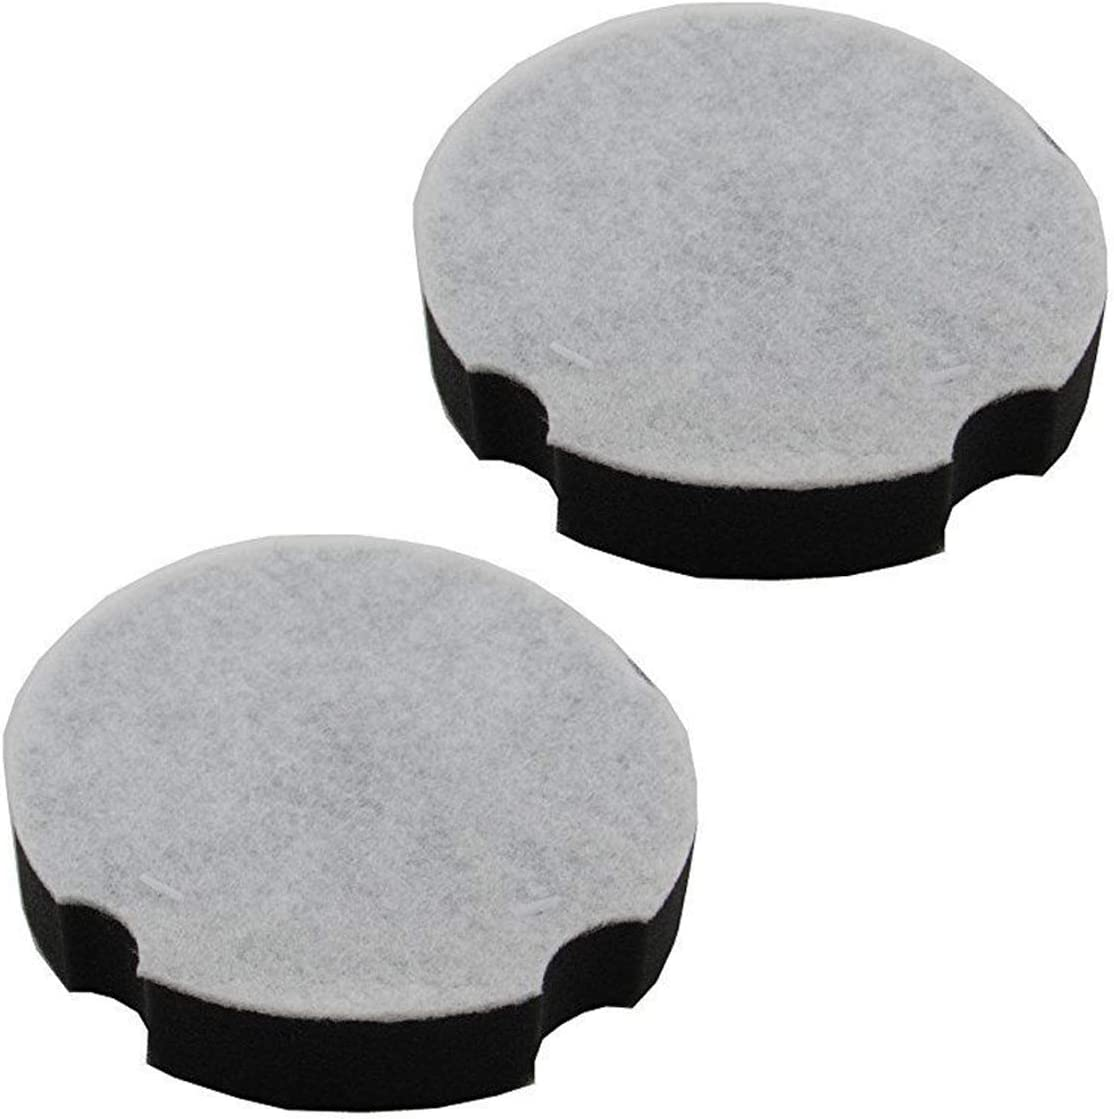 2pcs Replace Filters Kit for Bissell PowerForce 1604896 160-4896 Vacuum Cleaner